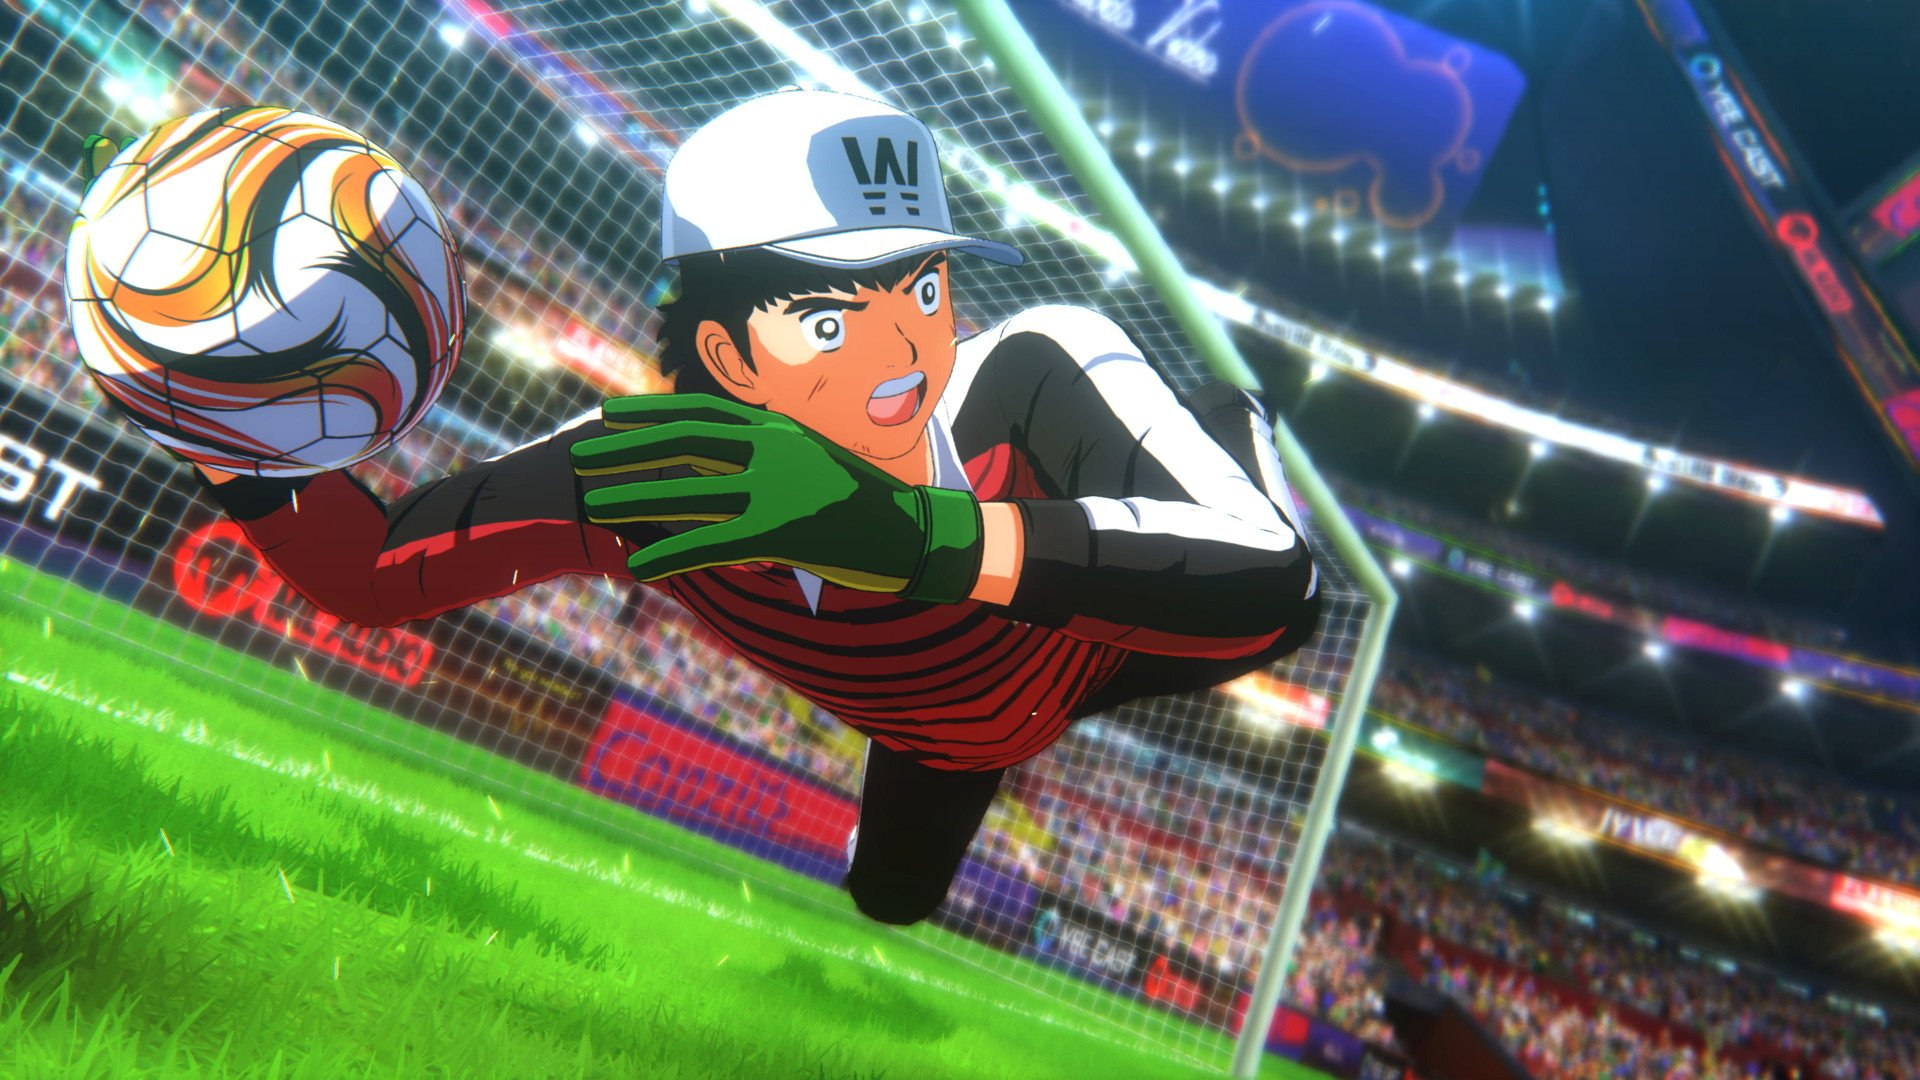 Captain Tsubasa: Rise of New Champions is the anime soccer game I didn't know I needed